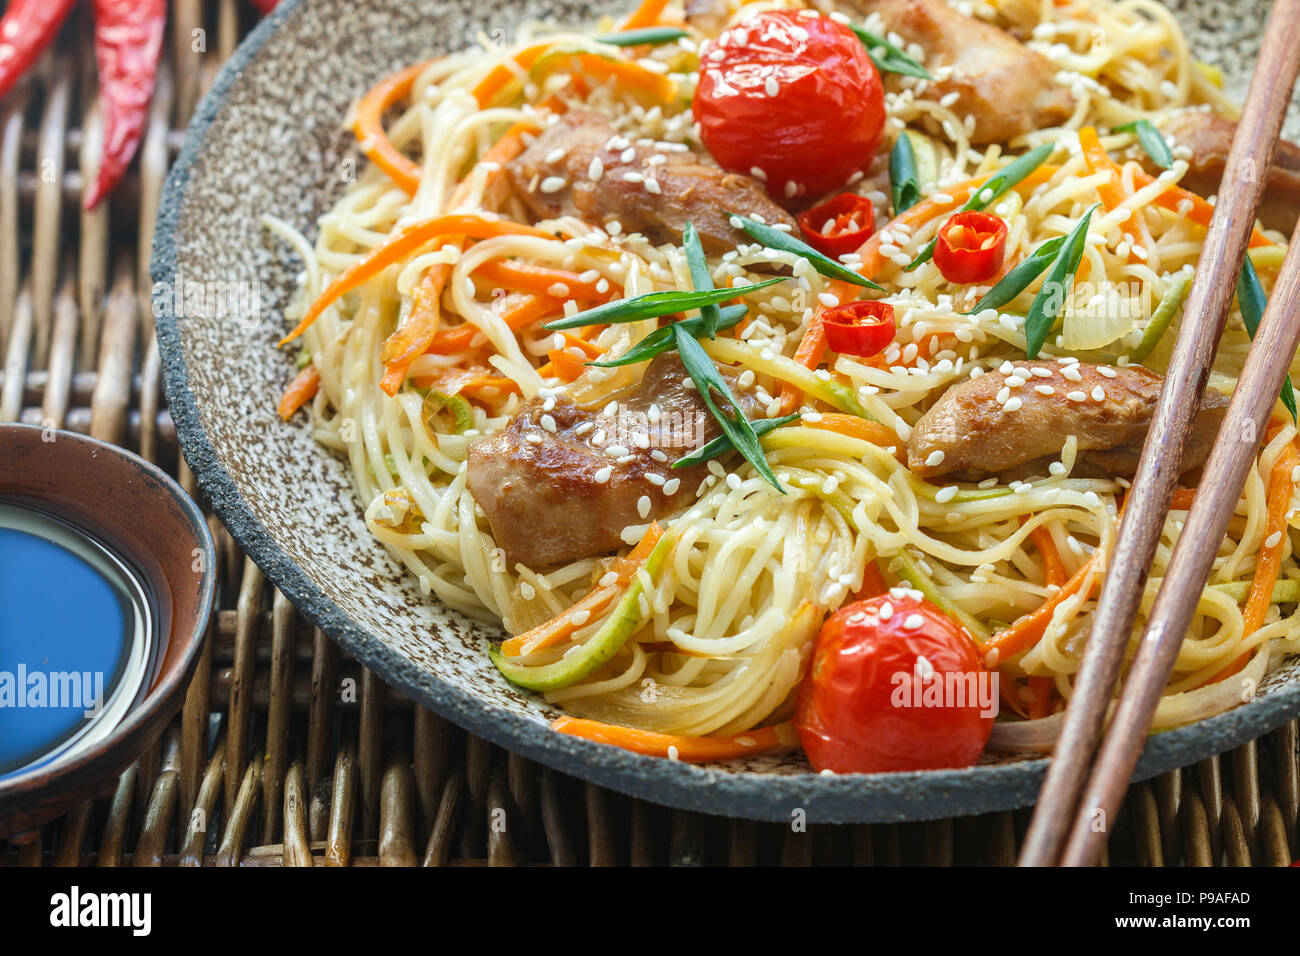 Stir fried noodle with chicken, vegetable (carrot, tomato,  zucchini, garlic, red pepper, green onion), sesame seeds and soy sauce on clay plate close - Stock Image